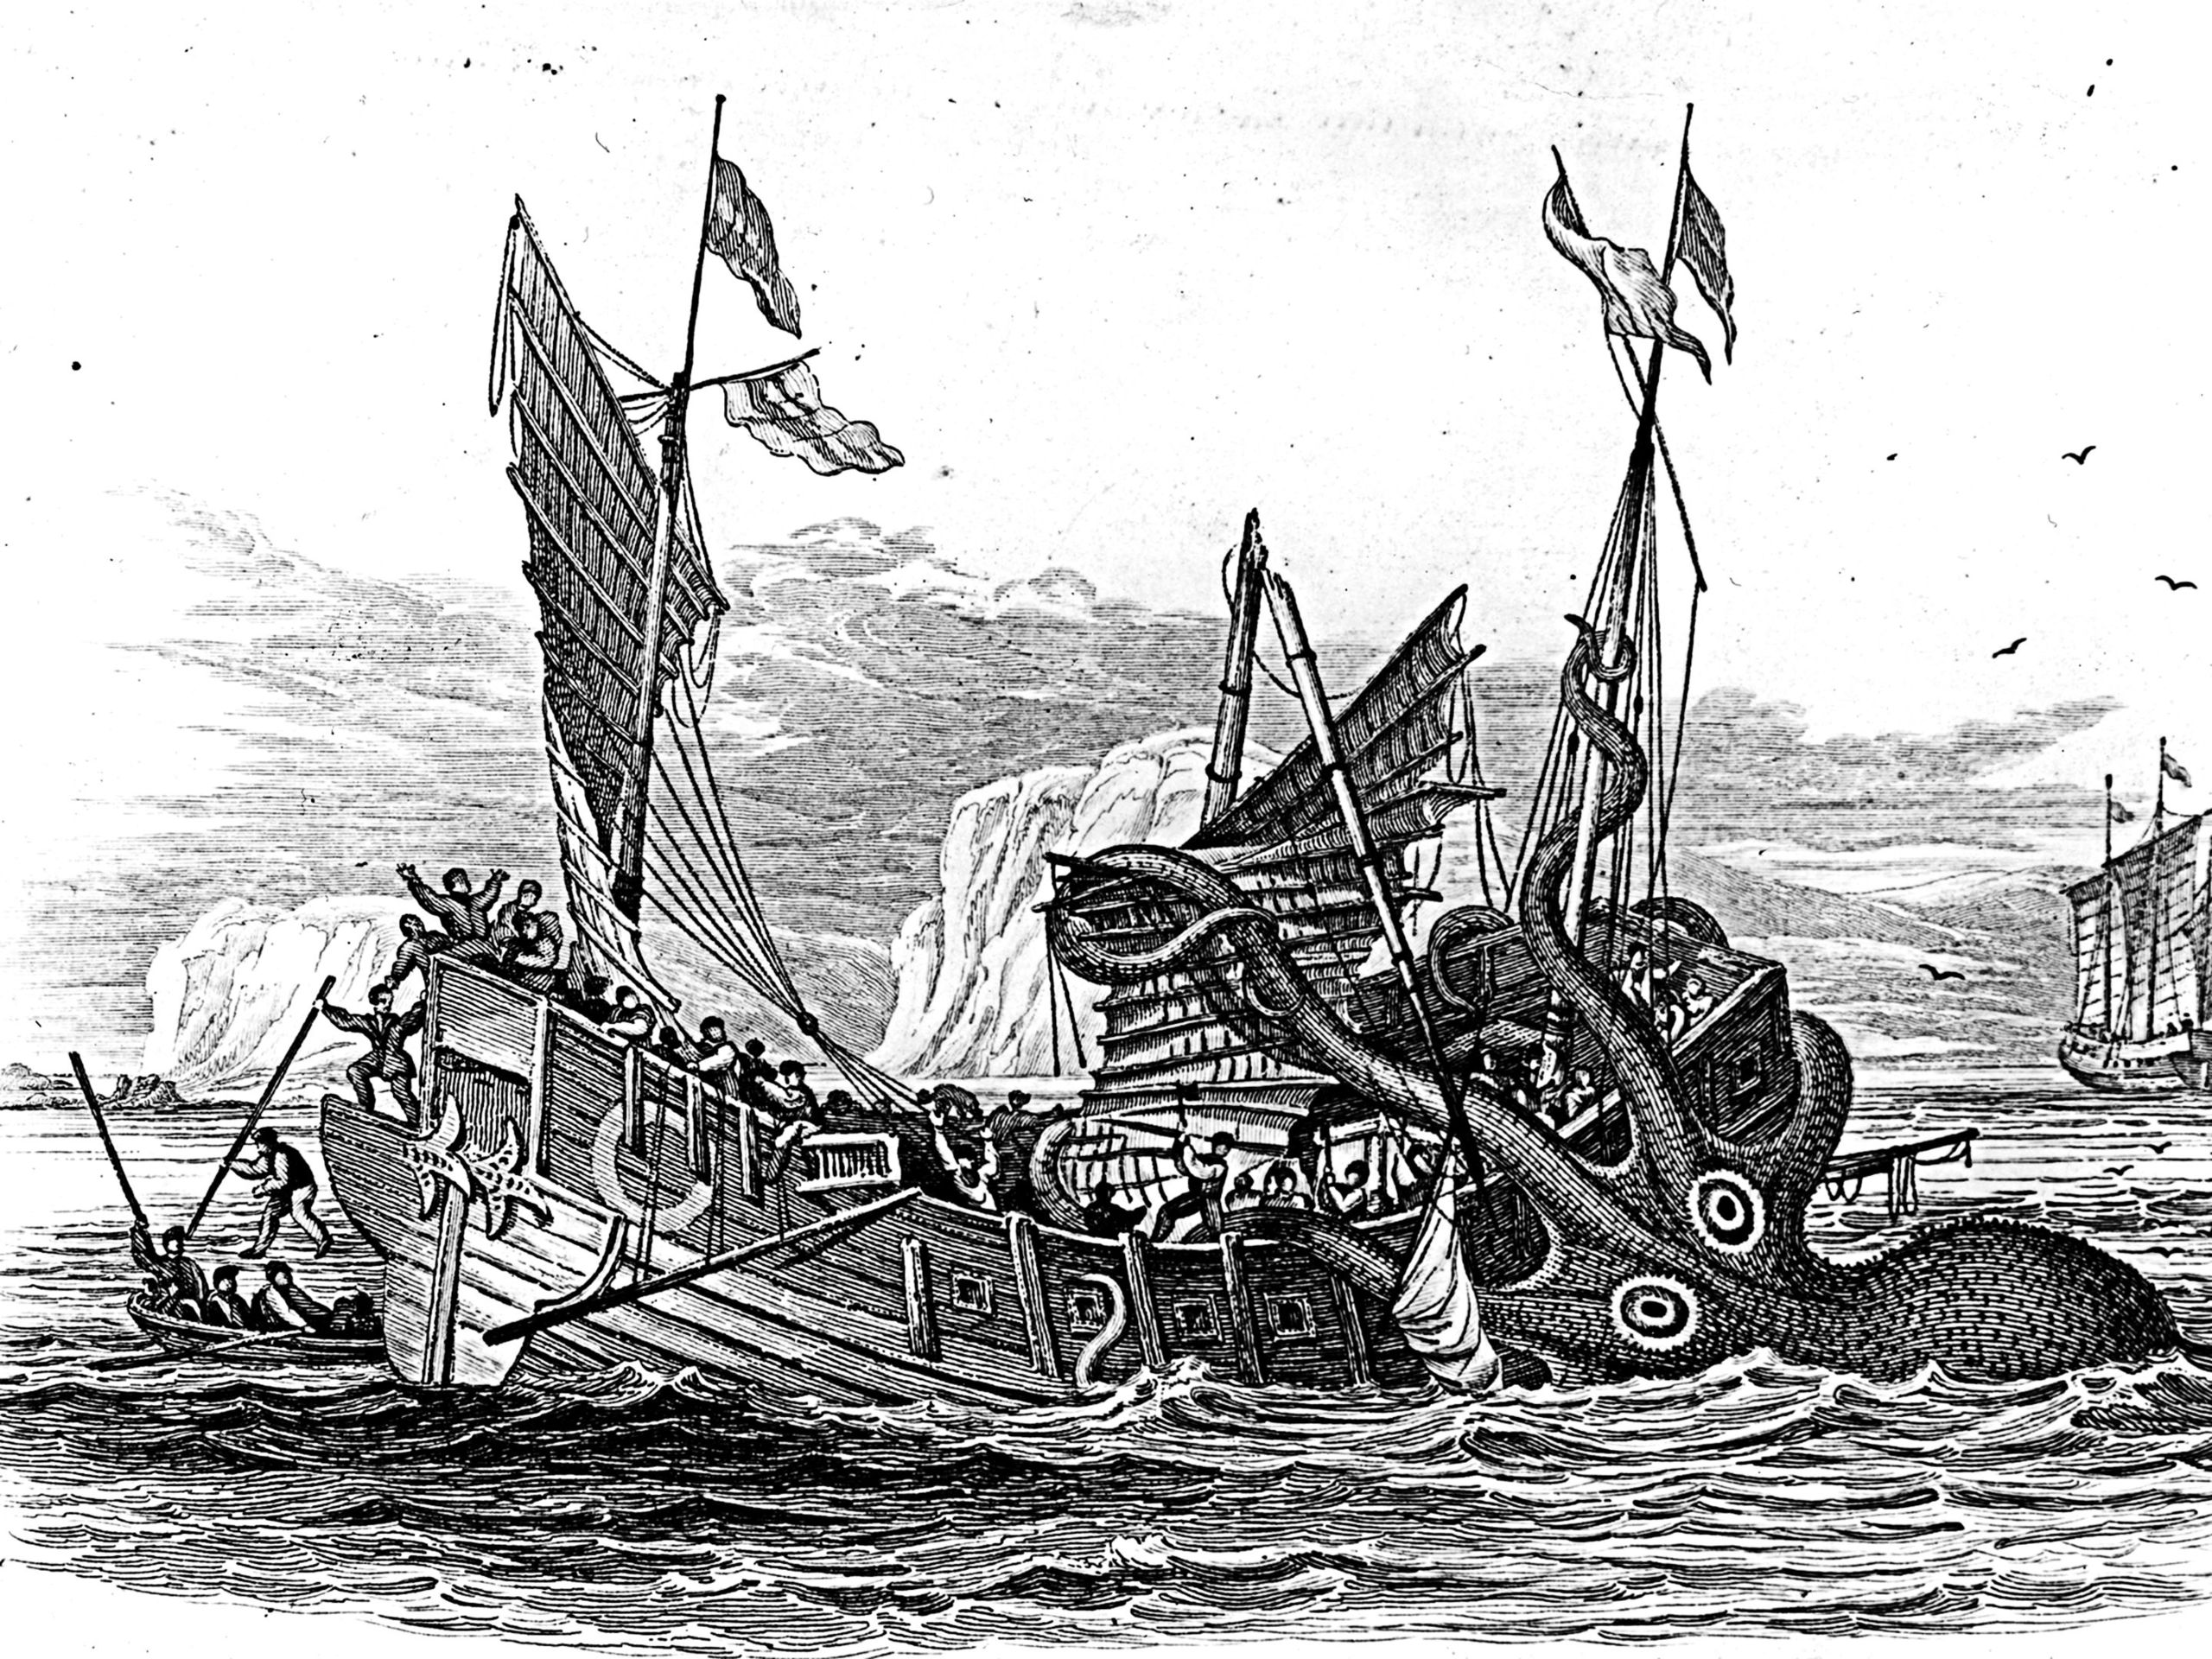 This illustration from 1810 shows a Kraken devouring a ship at sea.